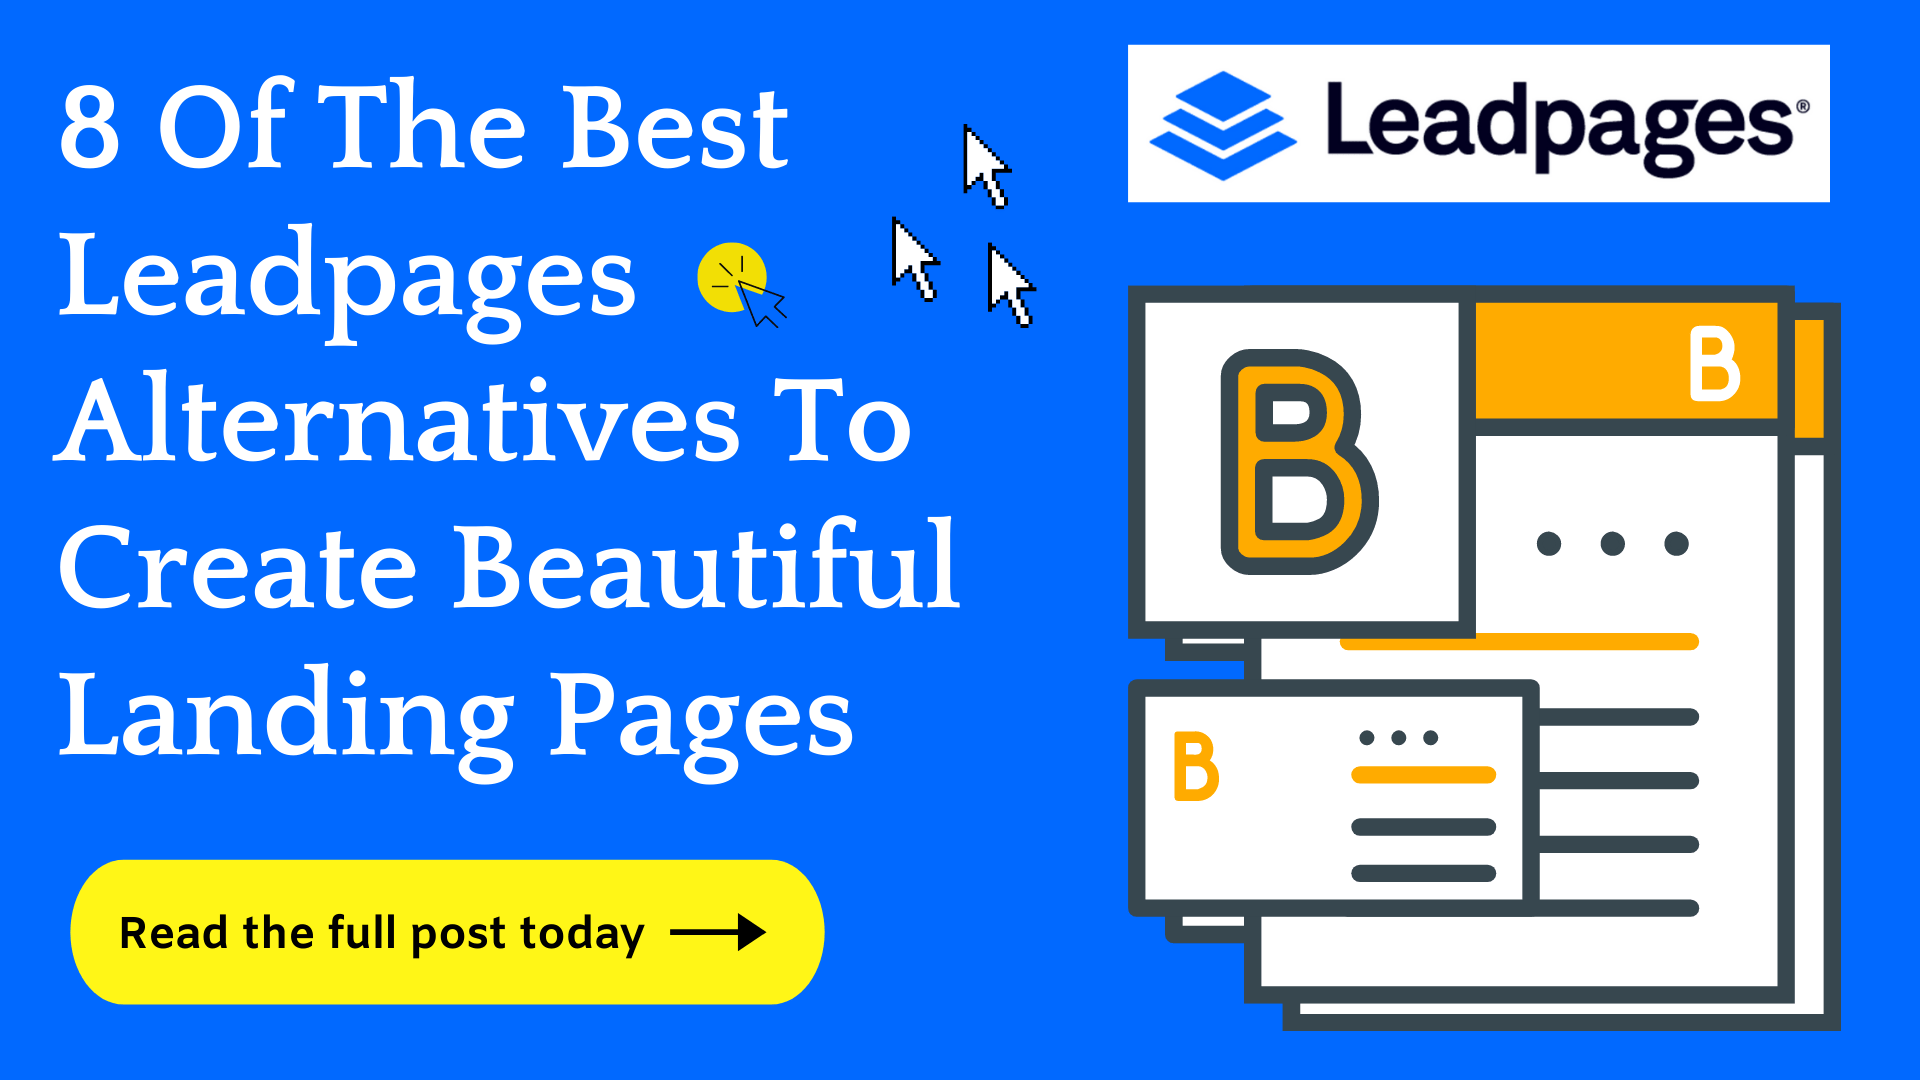 8 Leadpages Alternatives They Don't Want You To Know (2021)